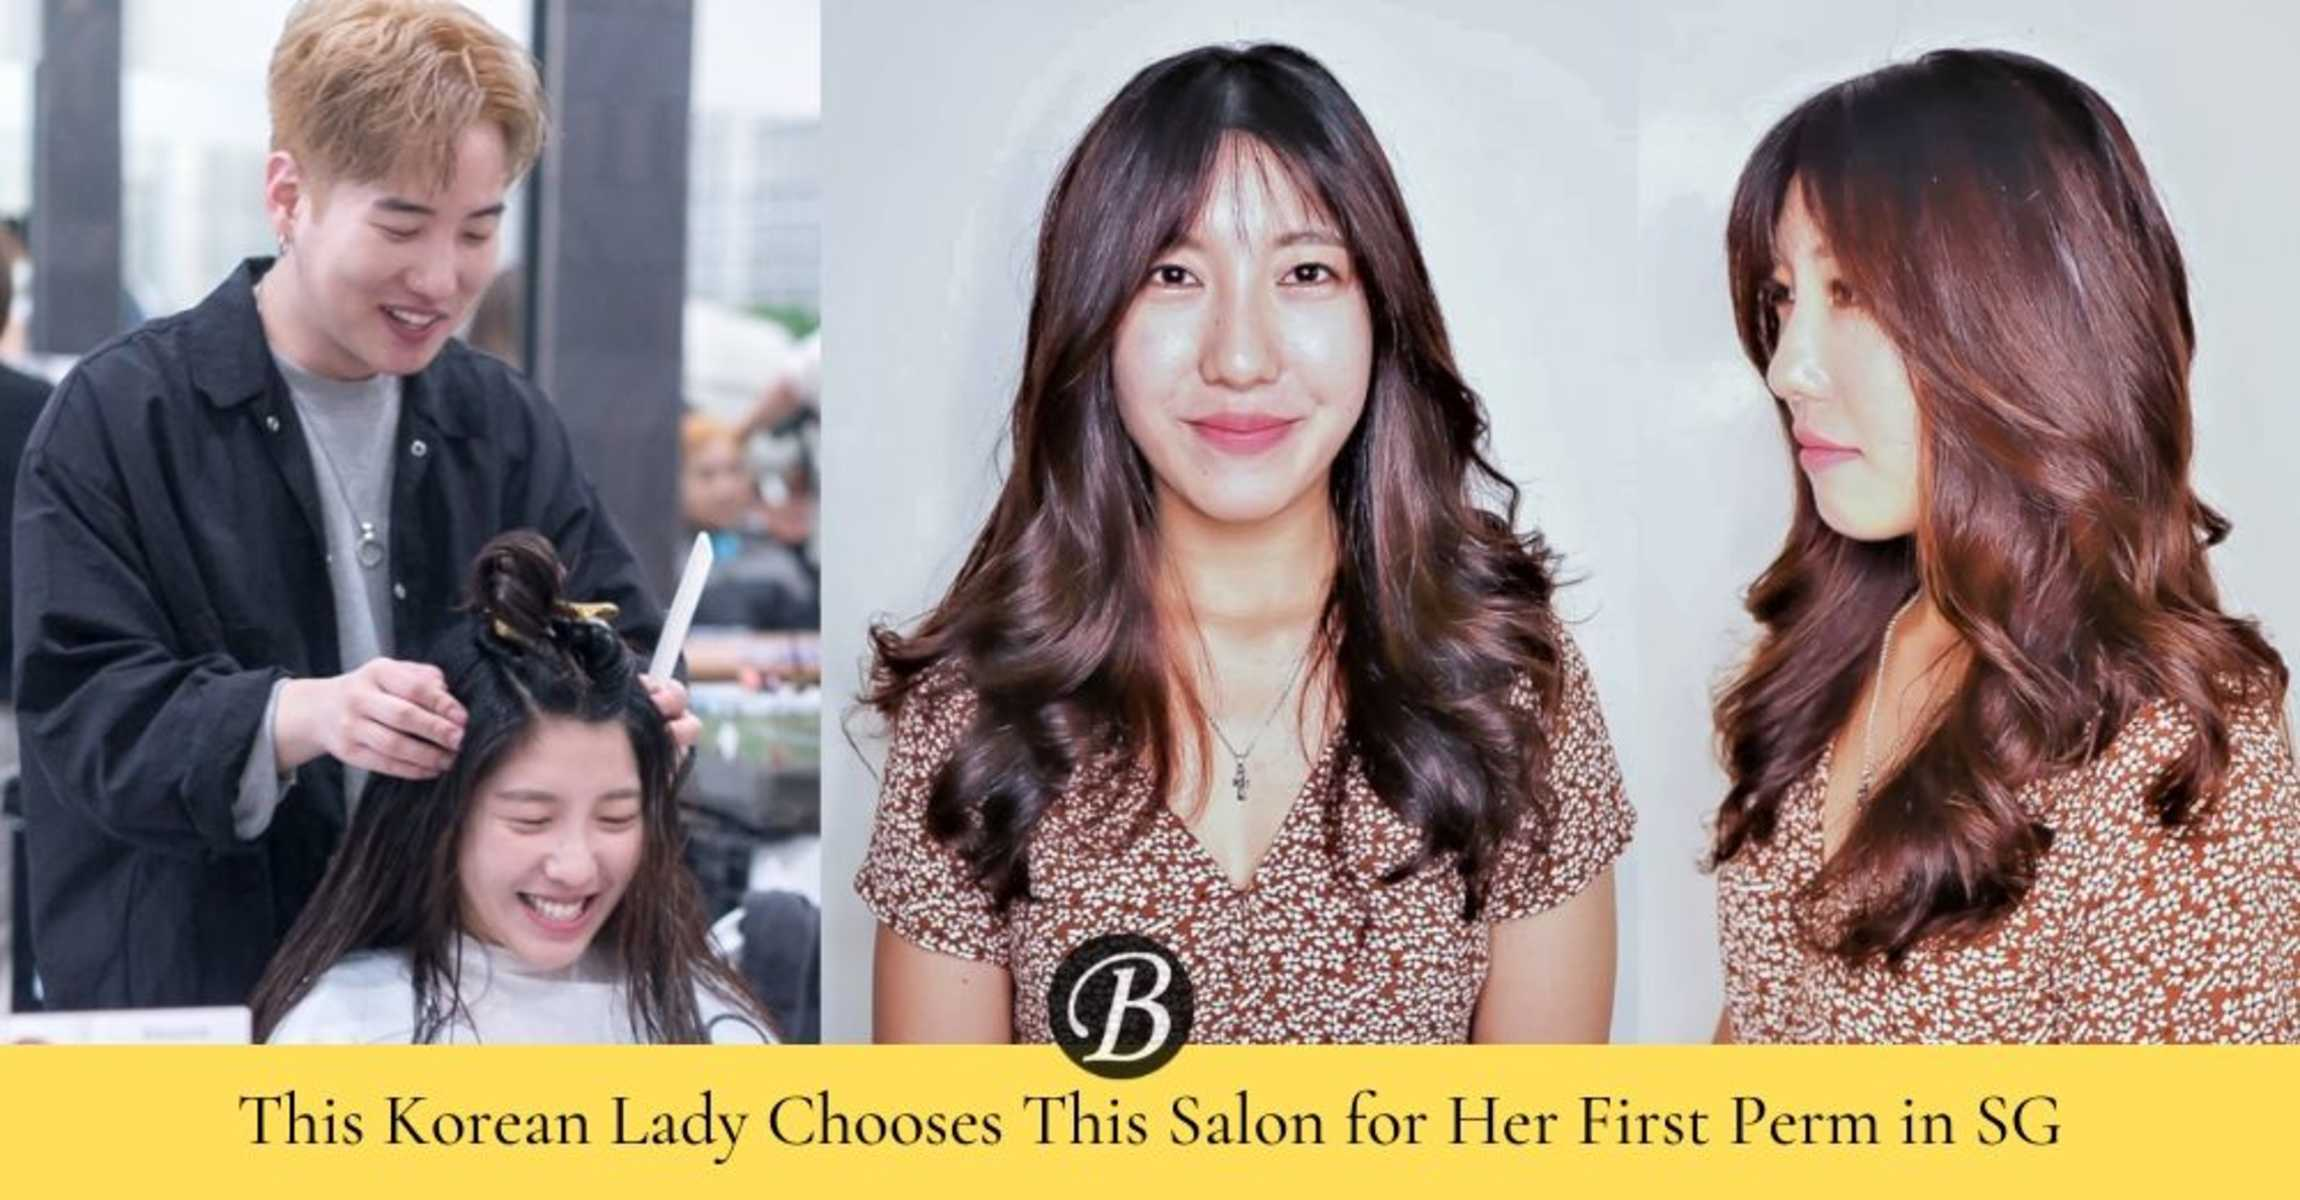 This Korean Lady Chooses This Salon for Her First Perm in Singapore